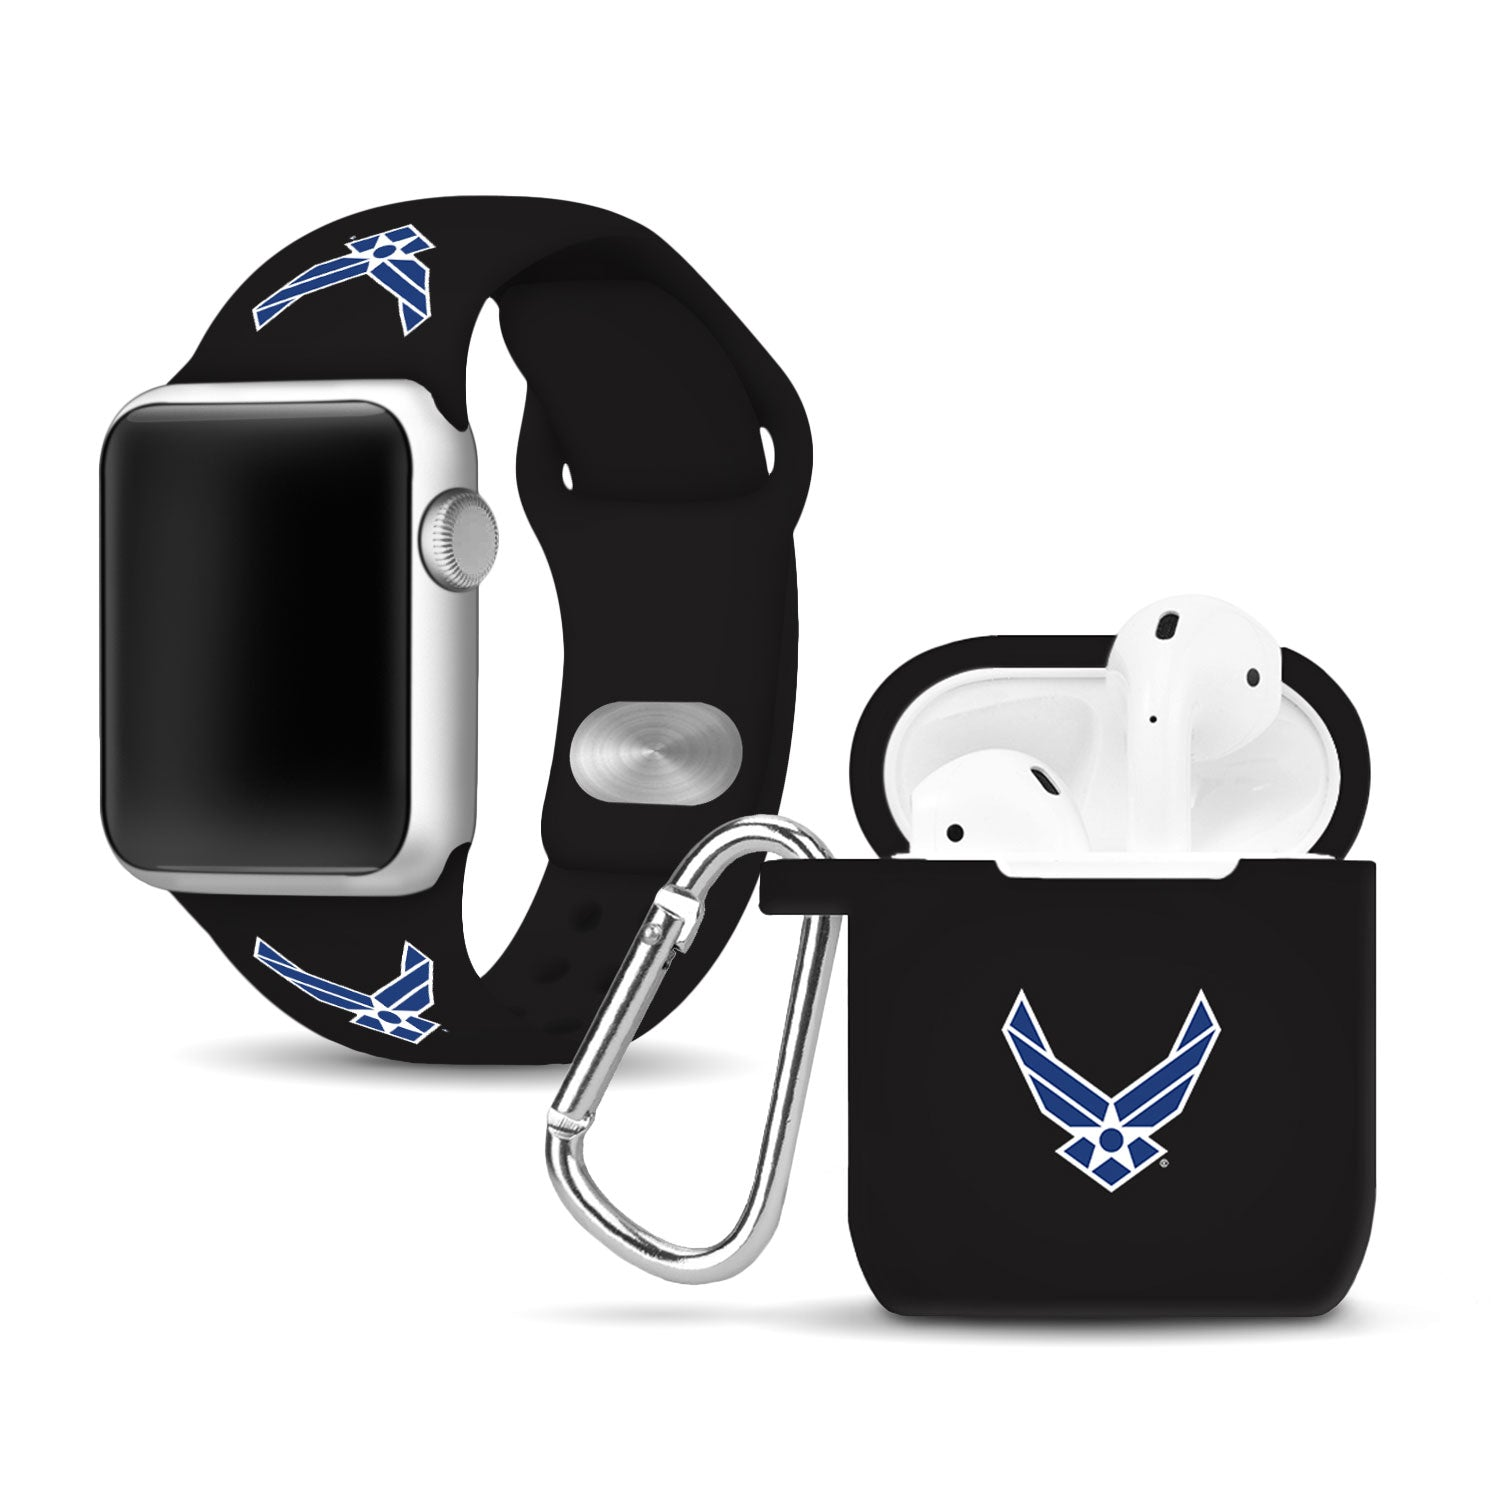 U.S. Air Force Apple Combo Package